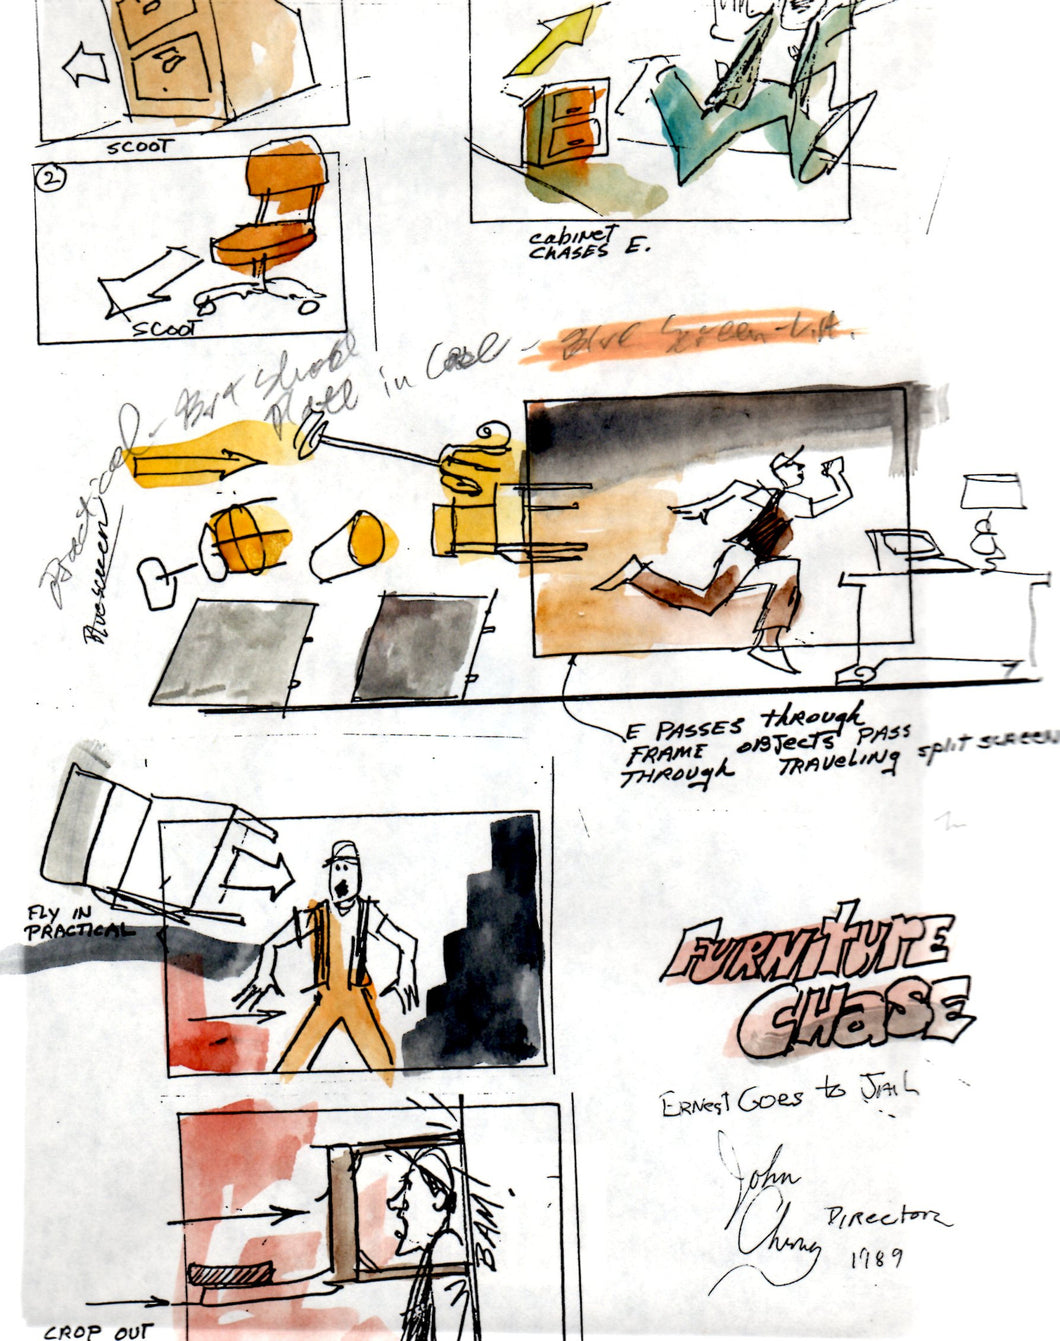 Opening Sequence, Magnetic Ernest: Furniture Chase - Ernest Goes to Jail Storyboard - SBJ026